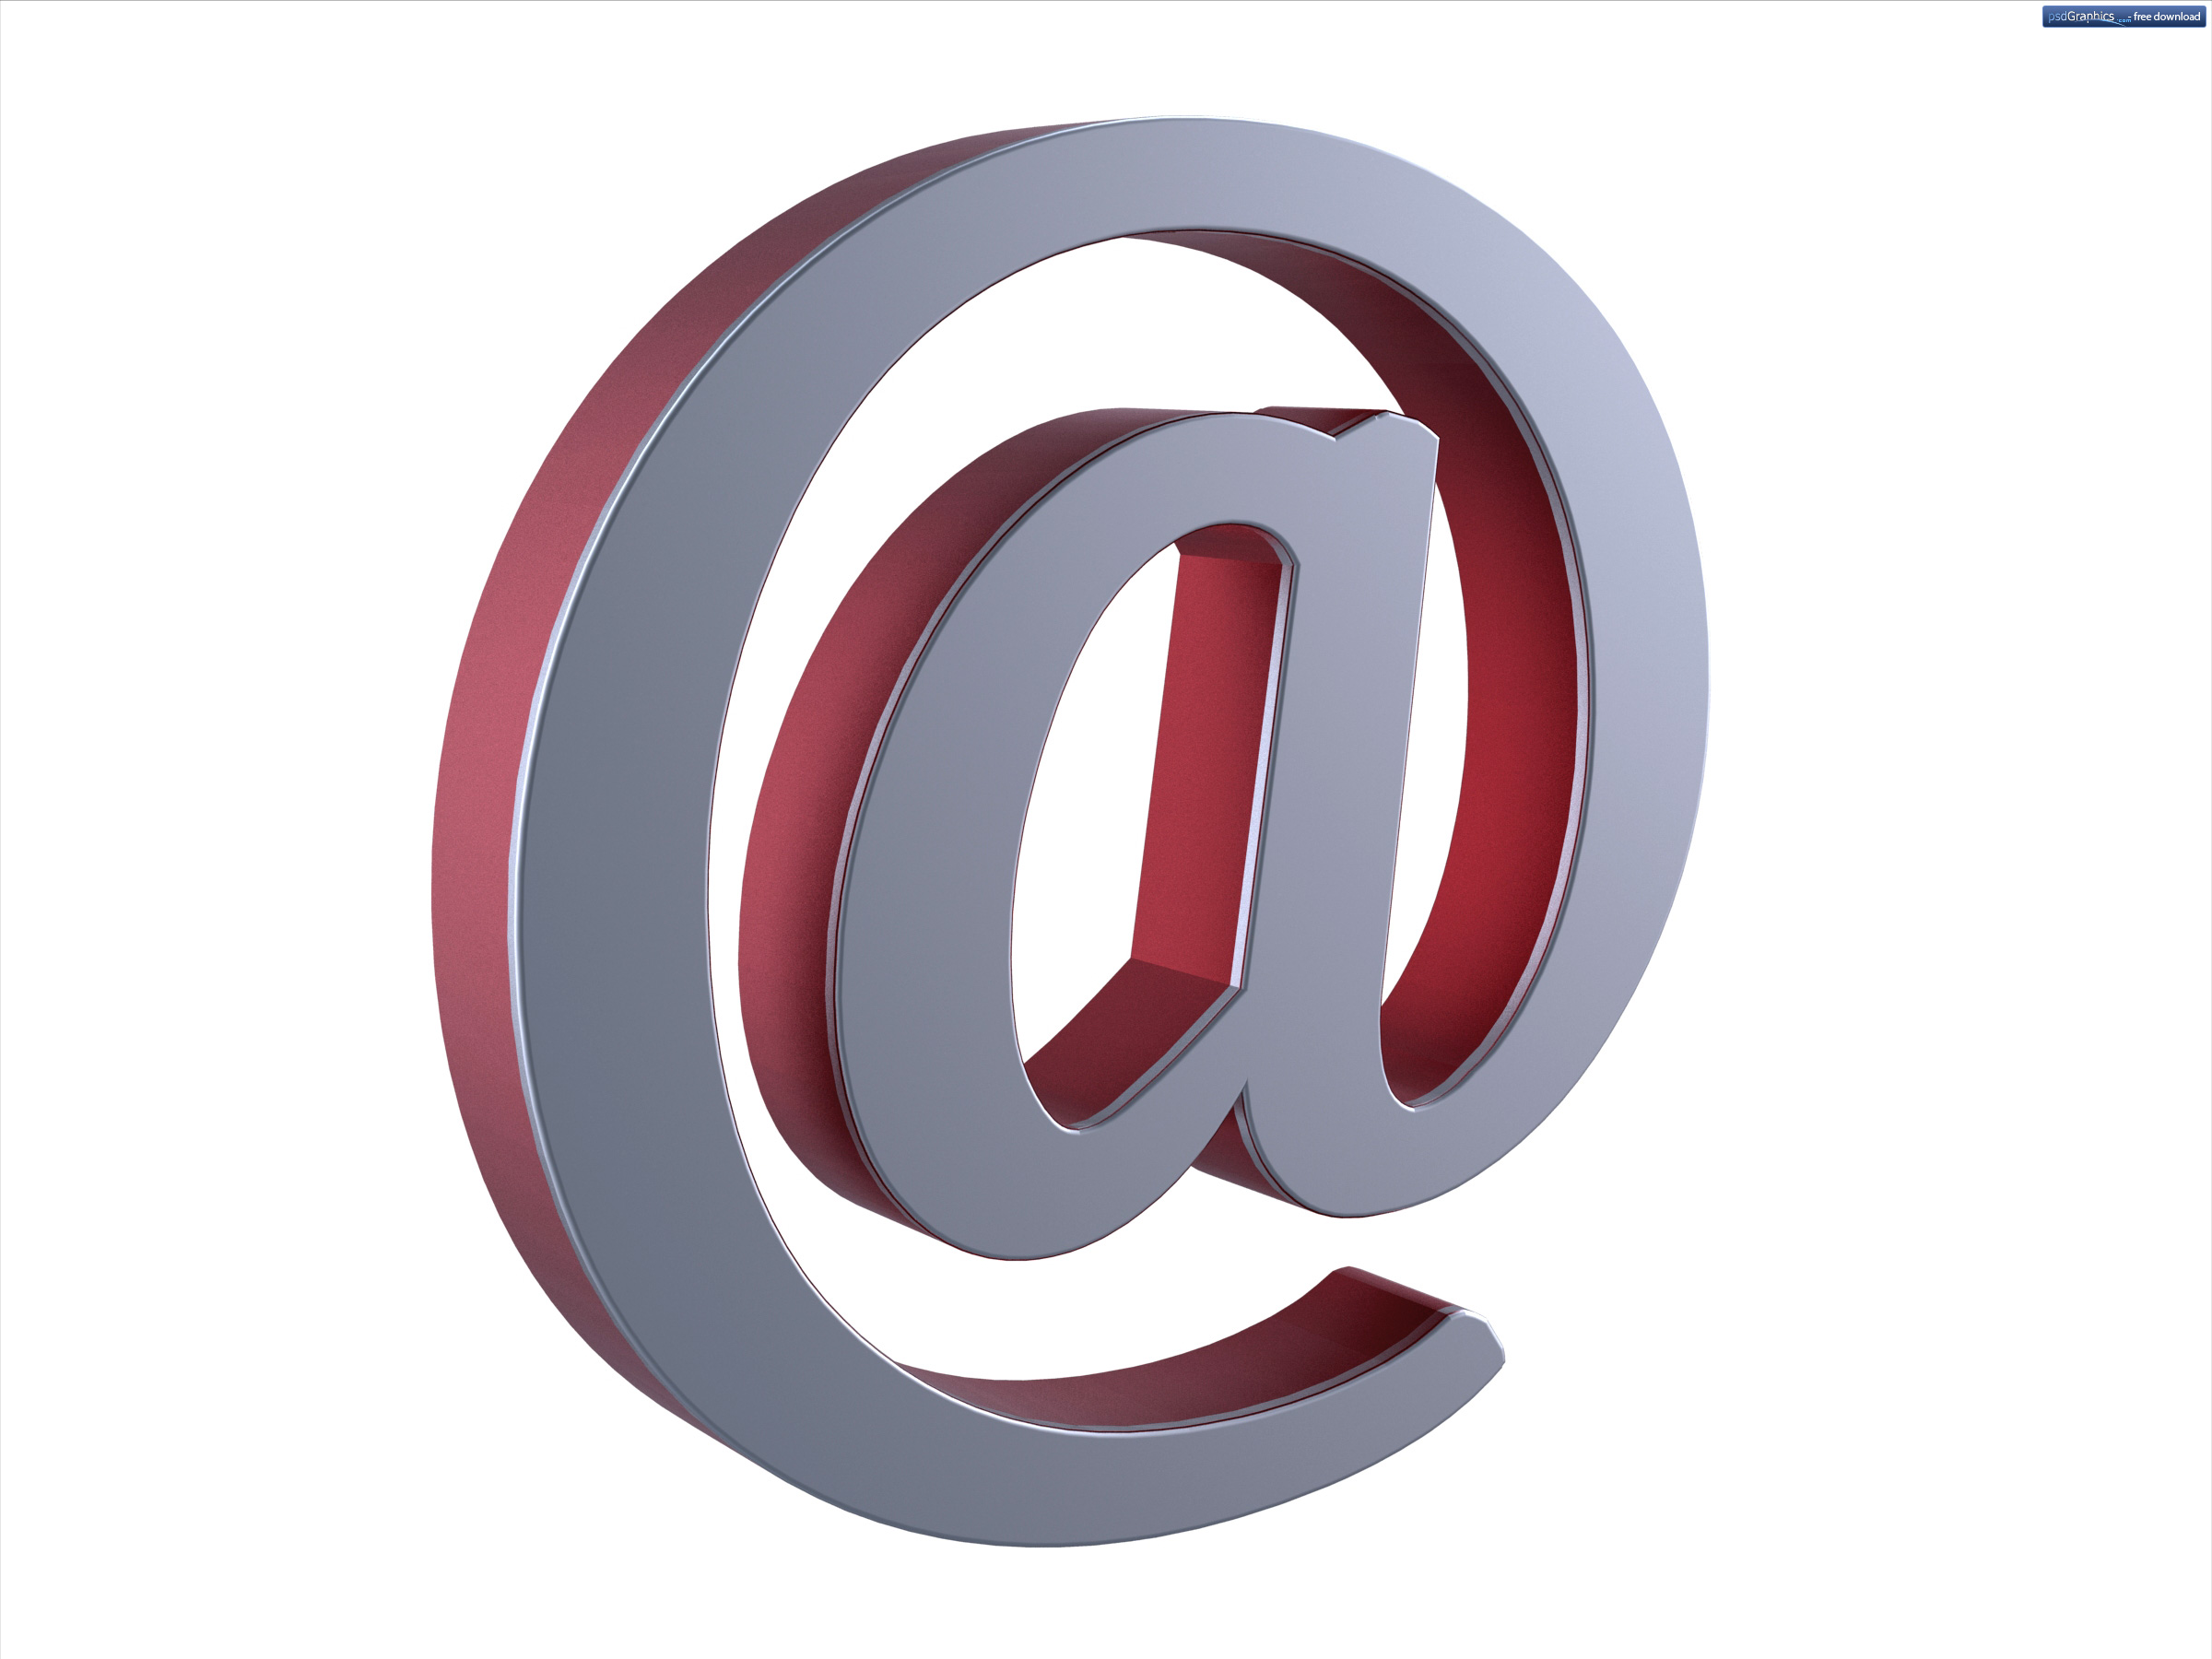 Email At Symbol Psdgraphics